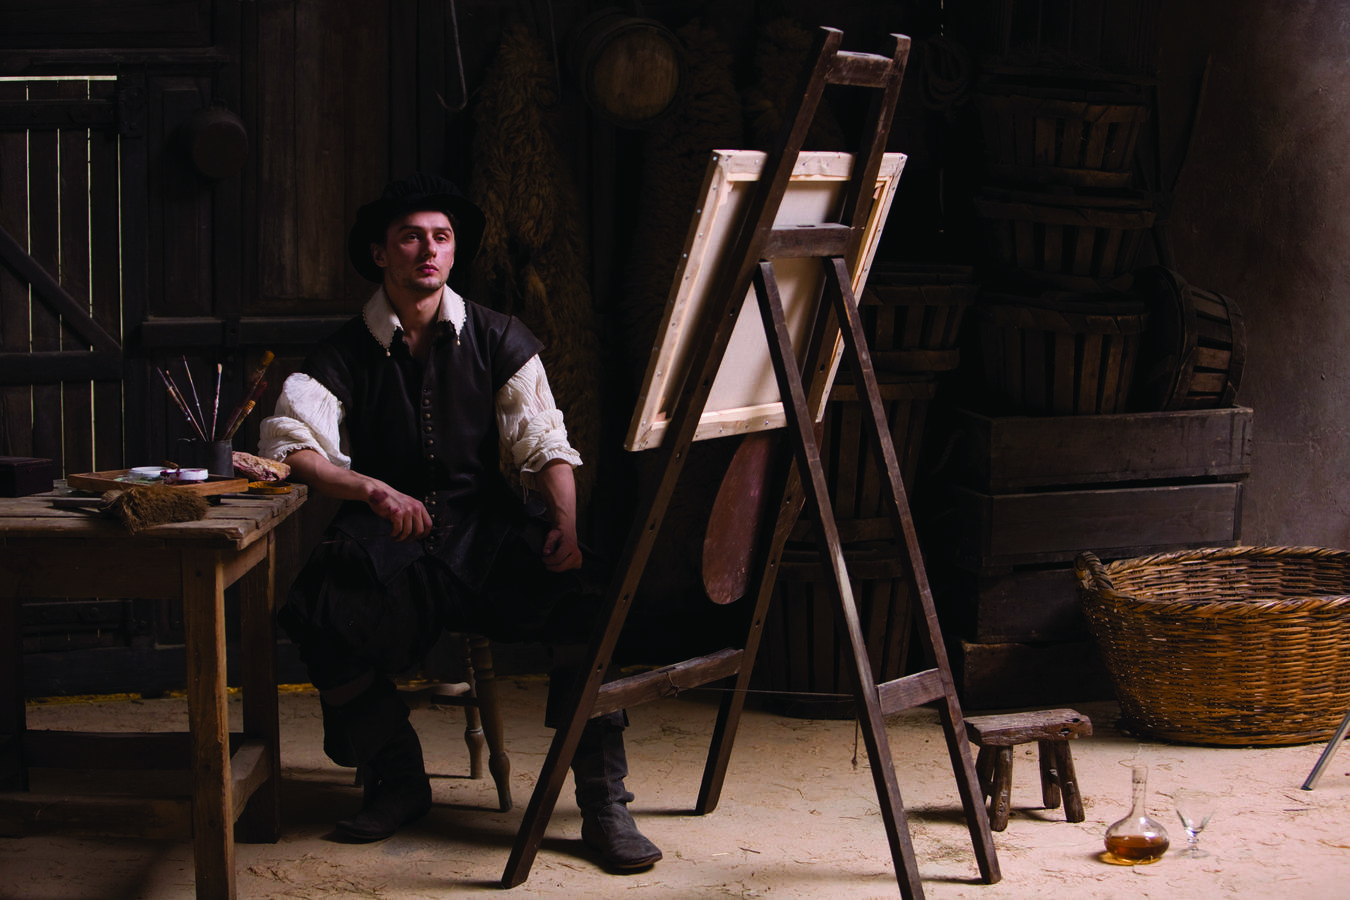 Annibale Carracci at his easel, from the film installation The Butcher's Shop